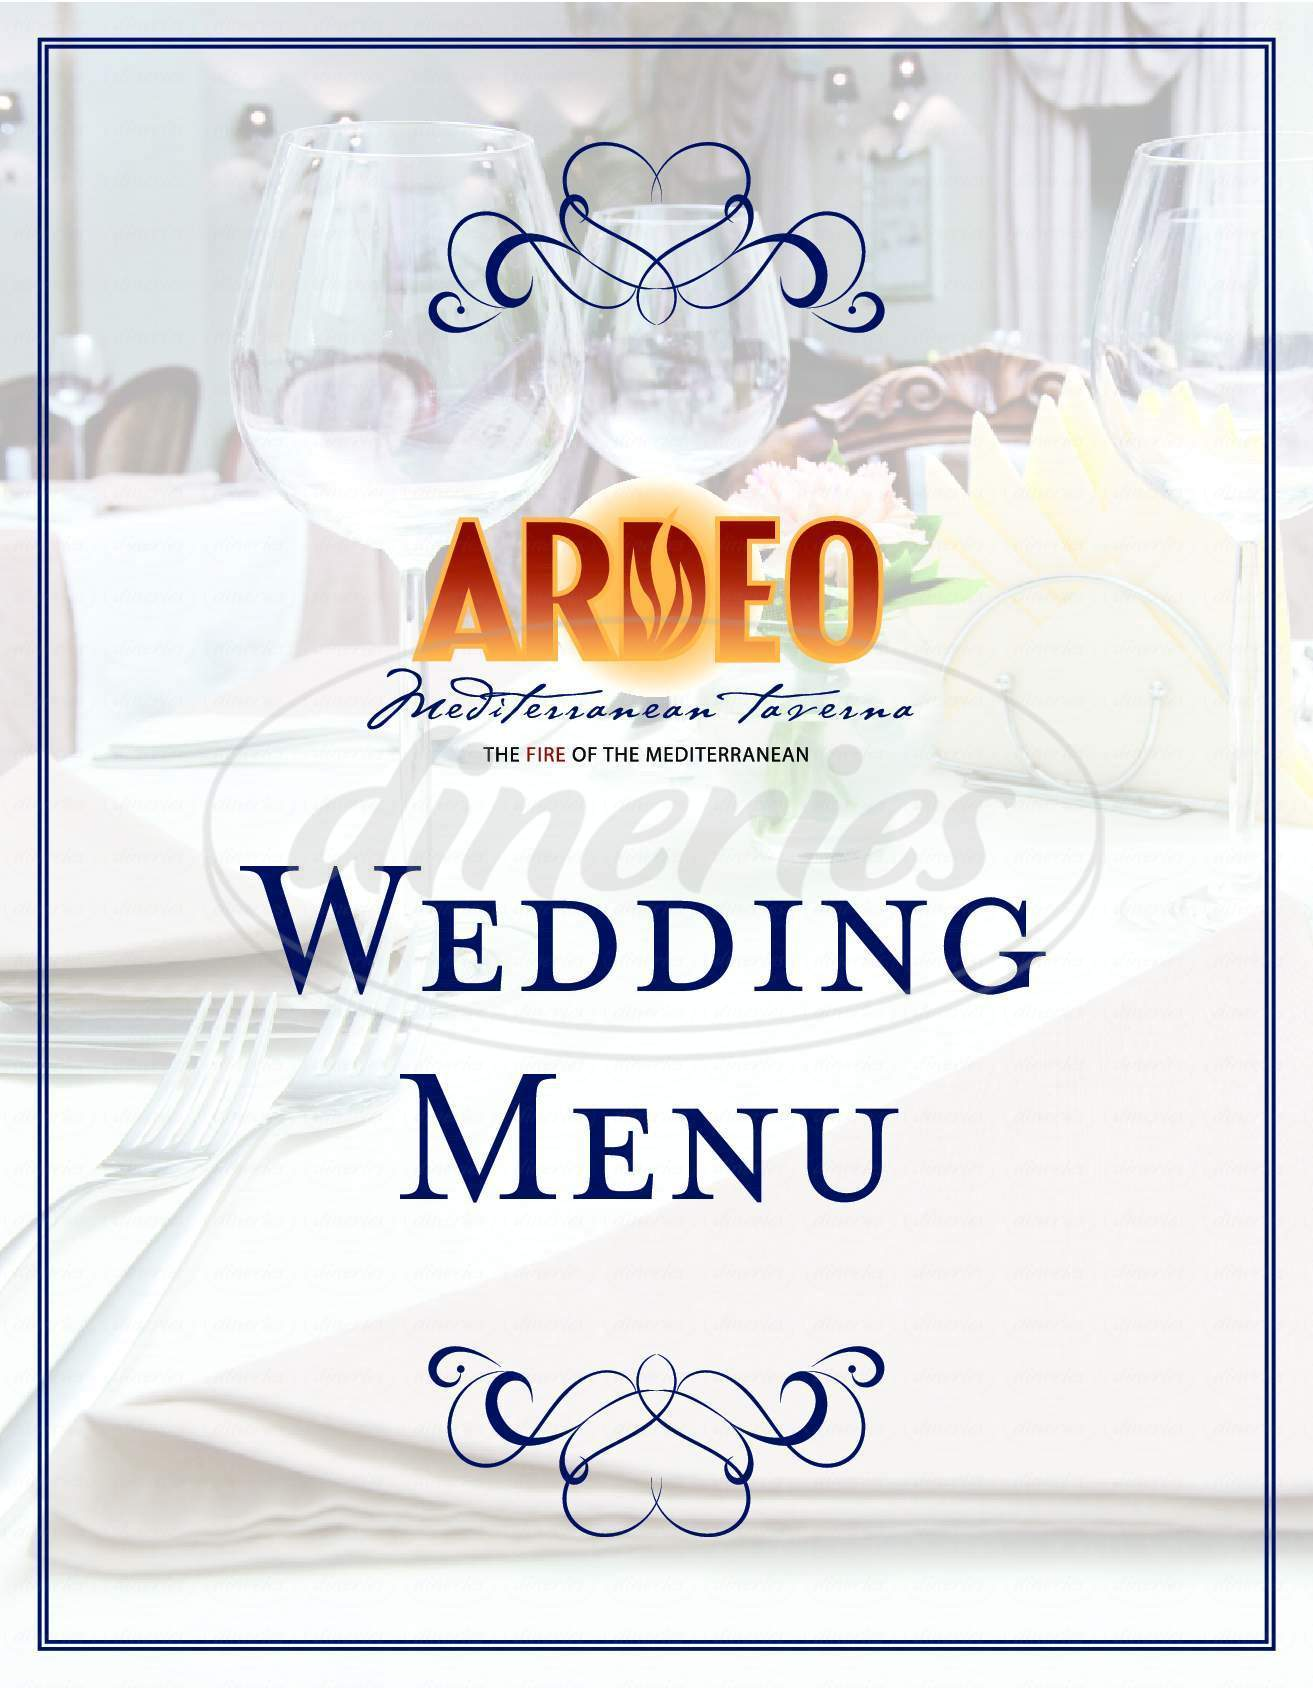 menu for Ardeo Mediterranean Taverna